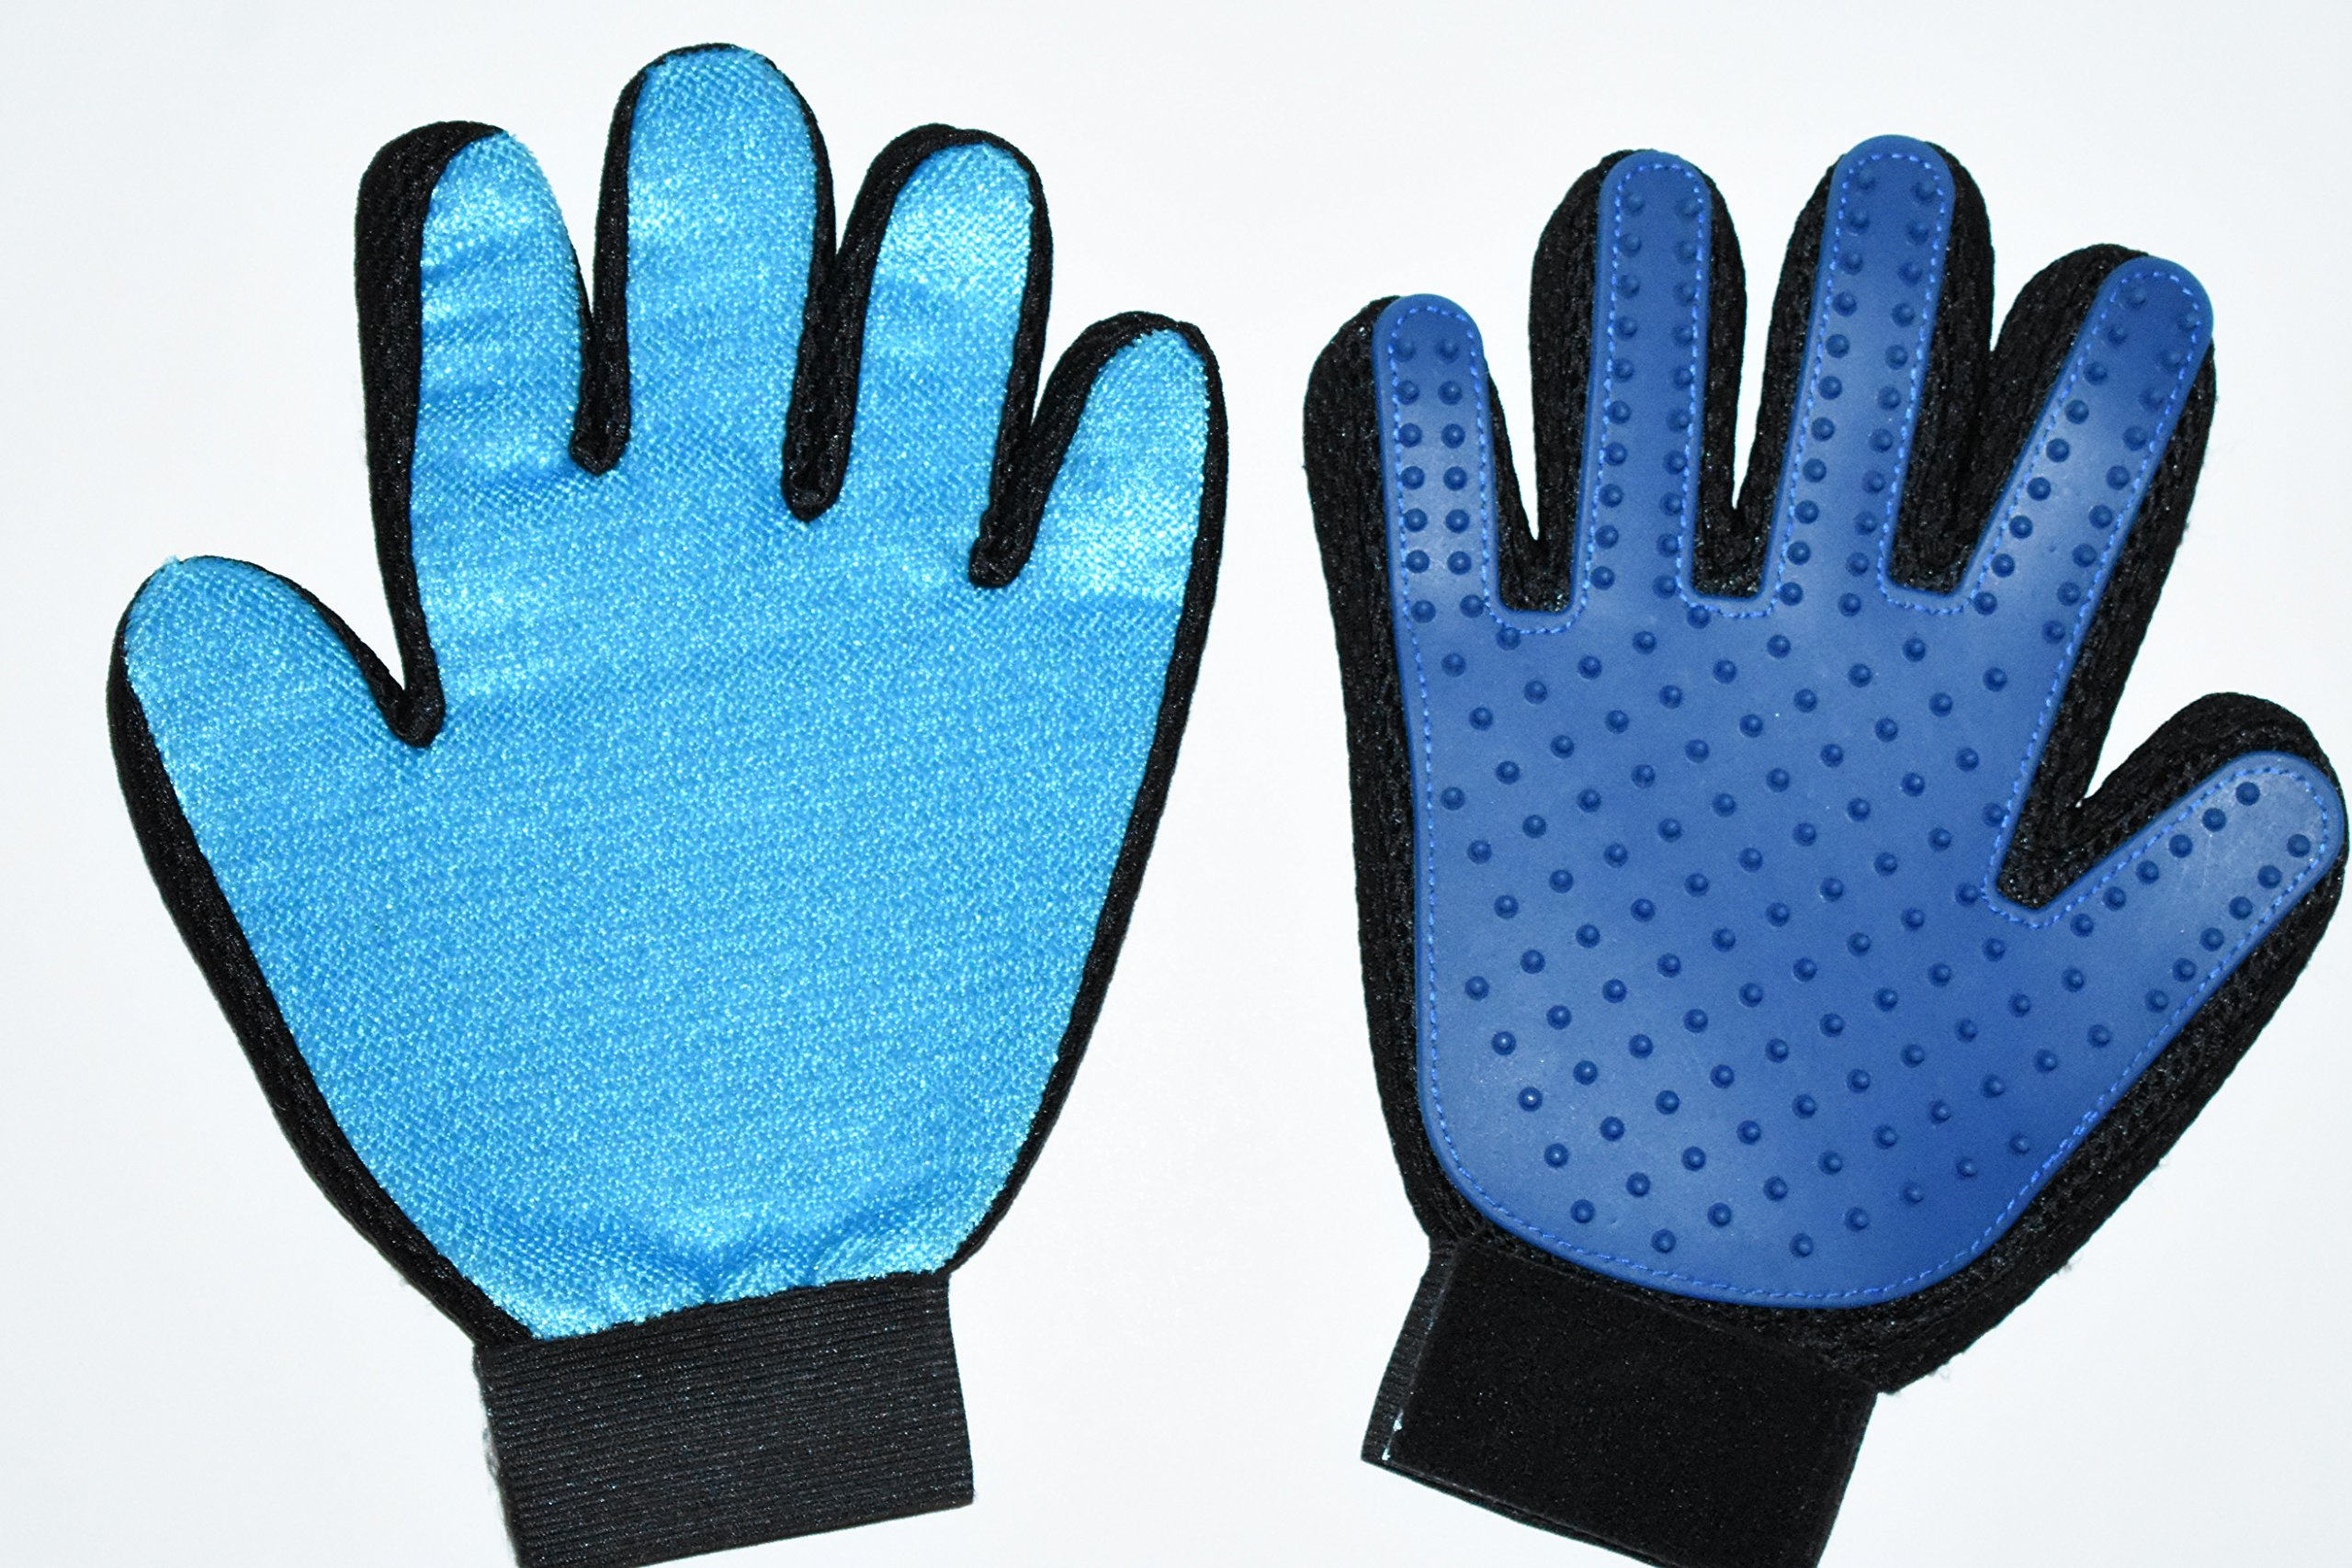 Happy Paws Pet Grooming Glove 2 in 1 Left and Right Hand Glove (1 Pair) Hair Remover and Deshedding Tool - Perfect for Dogs, Cats and Small Pets with Short or Long Fur- (Blue)